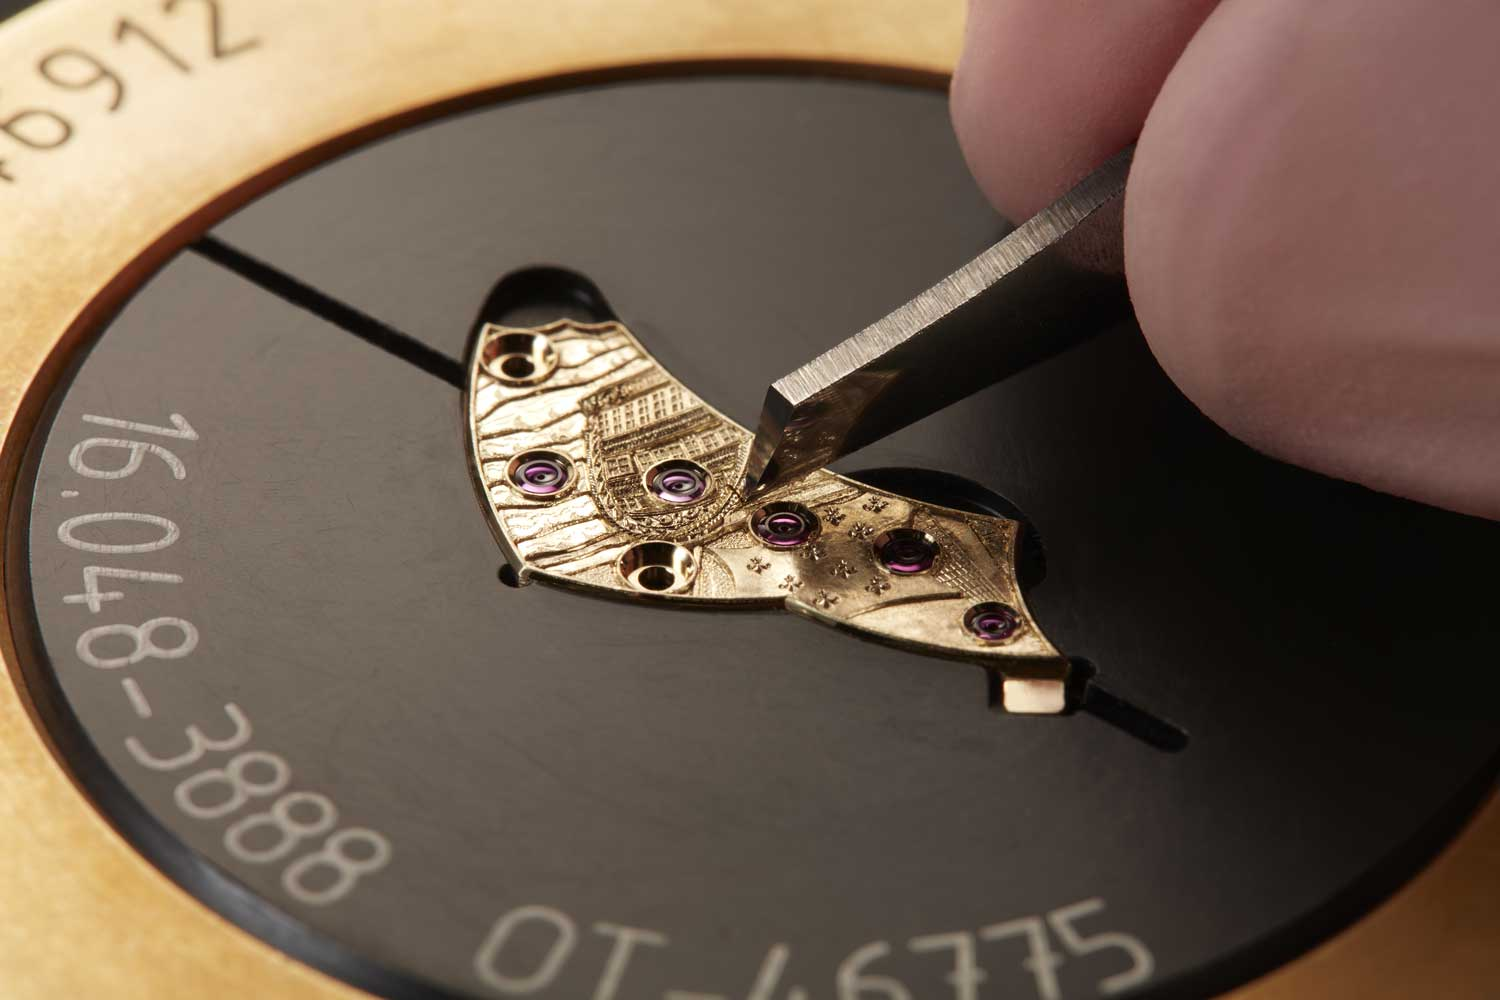 Detailed hand-engraving